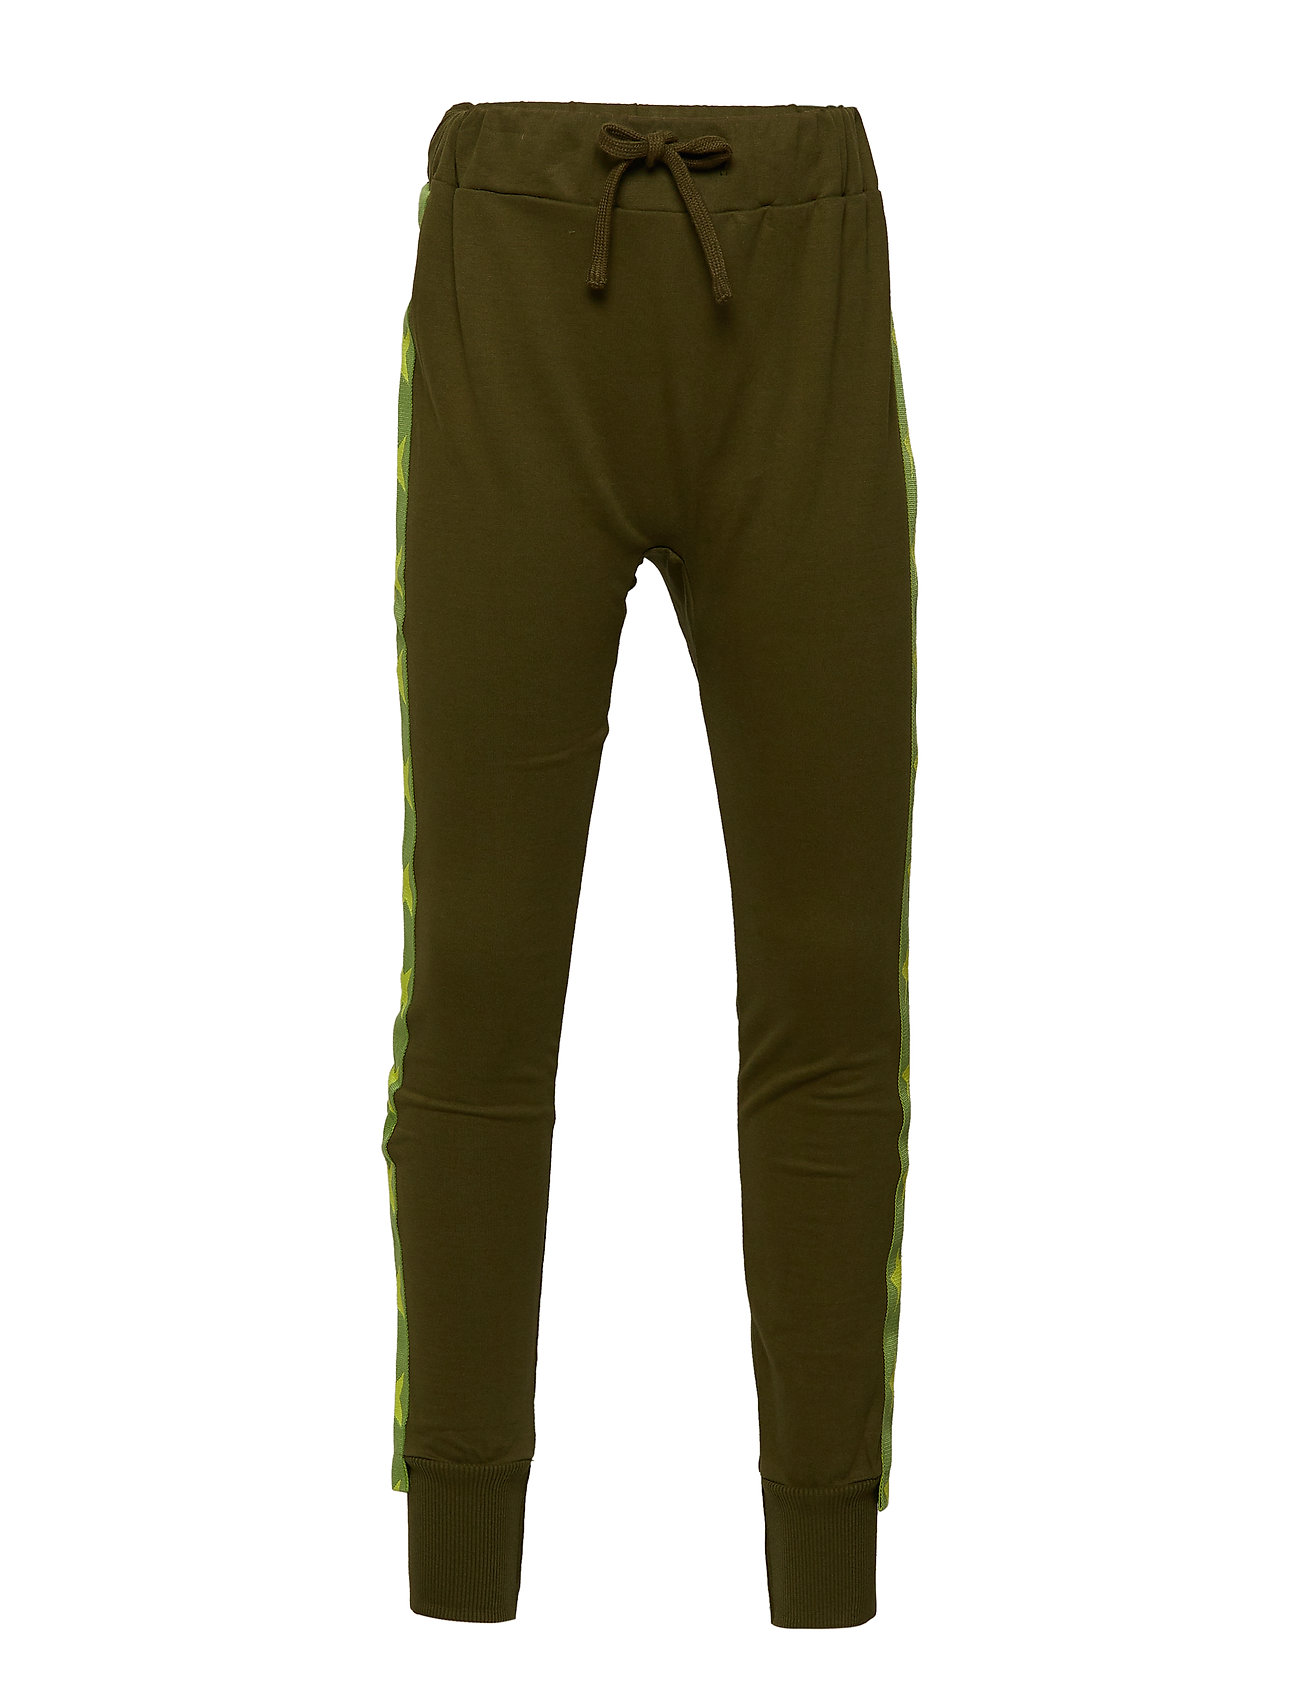 Tao & friends Sweatpants with Star fabric band UGGLAN - DARK GREEN